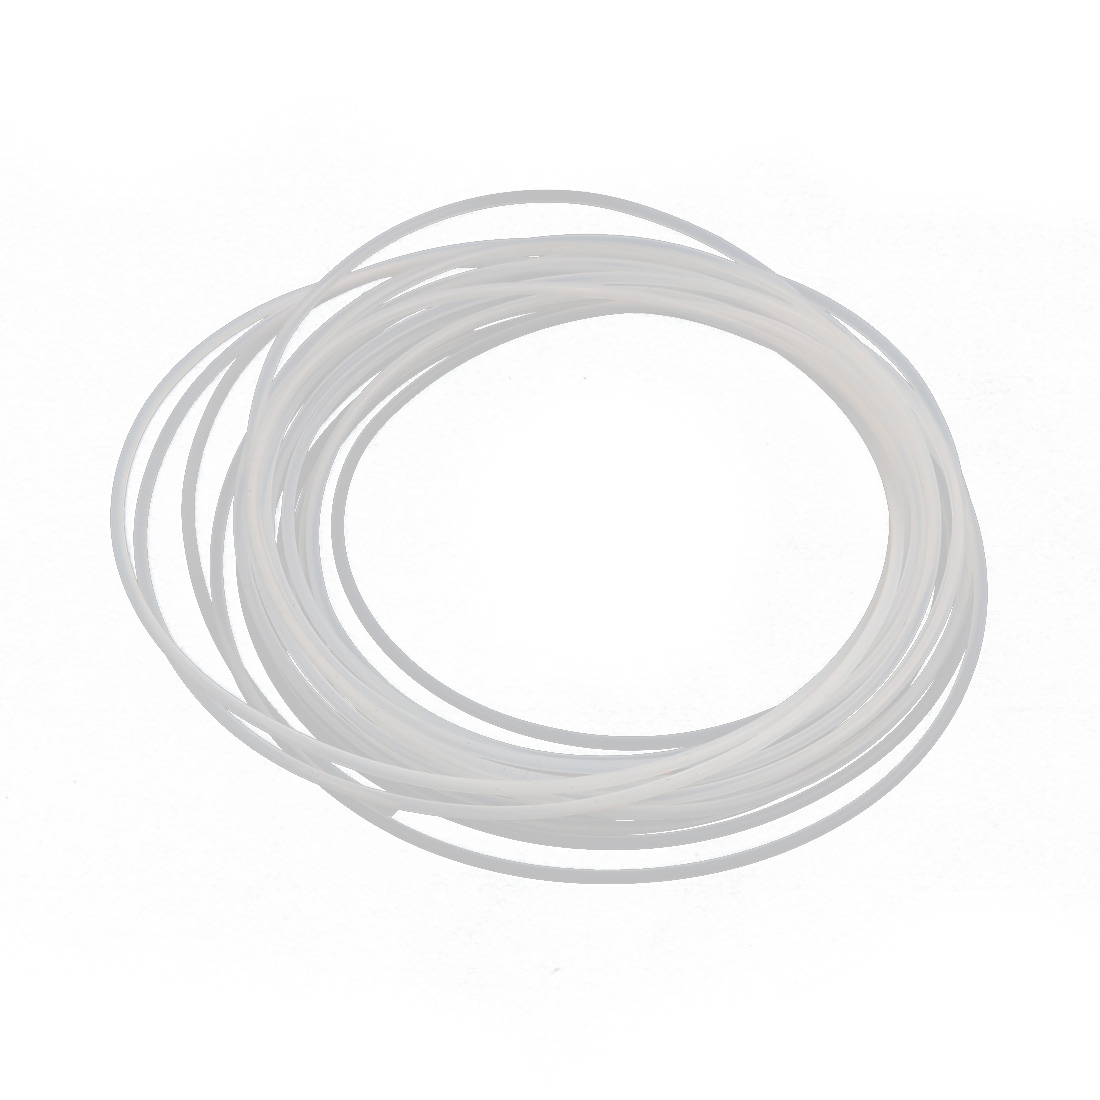 1.5mmx1.8mm PTFE Resistant High Temperature Transparent Tubing 5Meters 16.4Ft